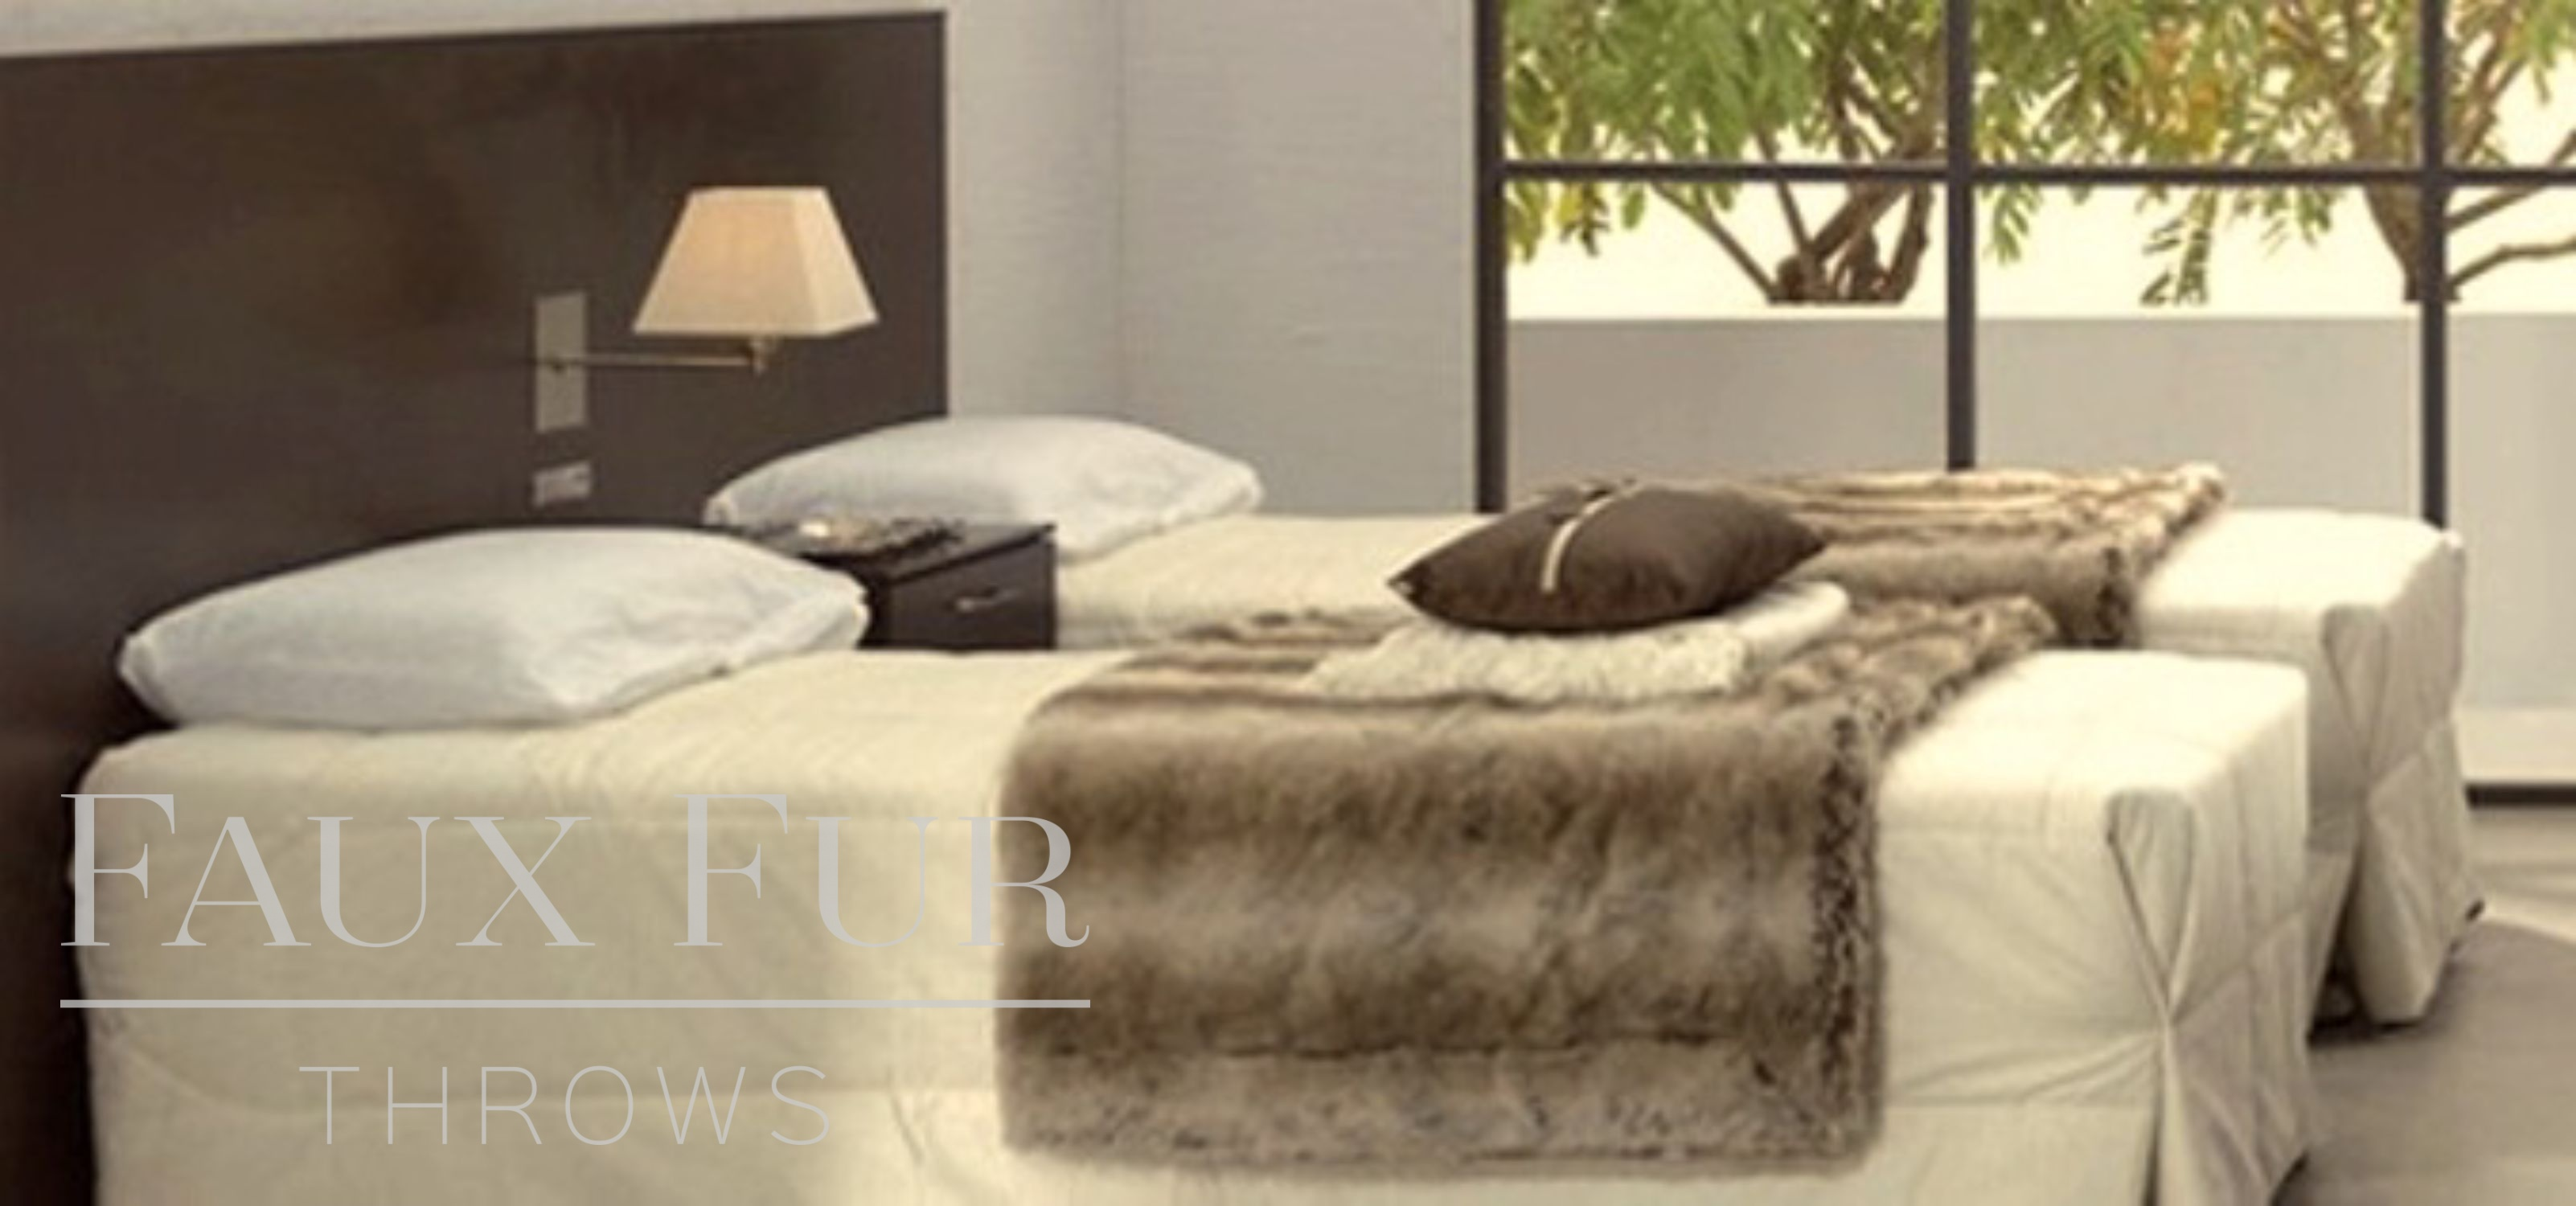 single bed size design. Faux Fur Bed Throw Single Size Design